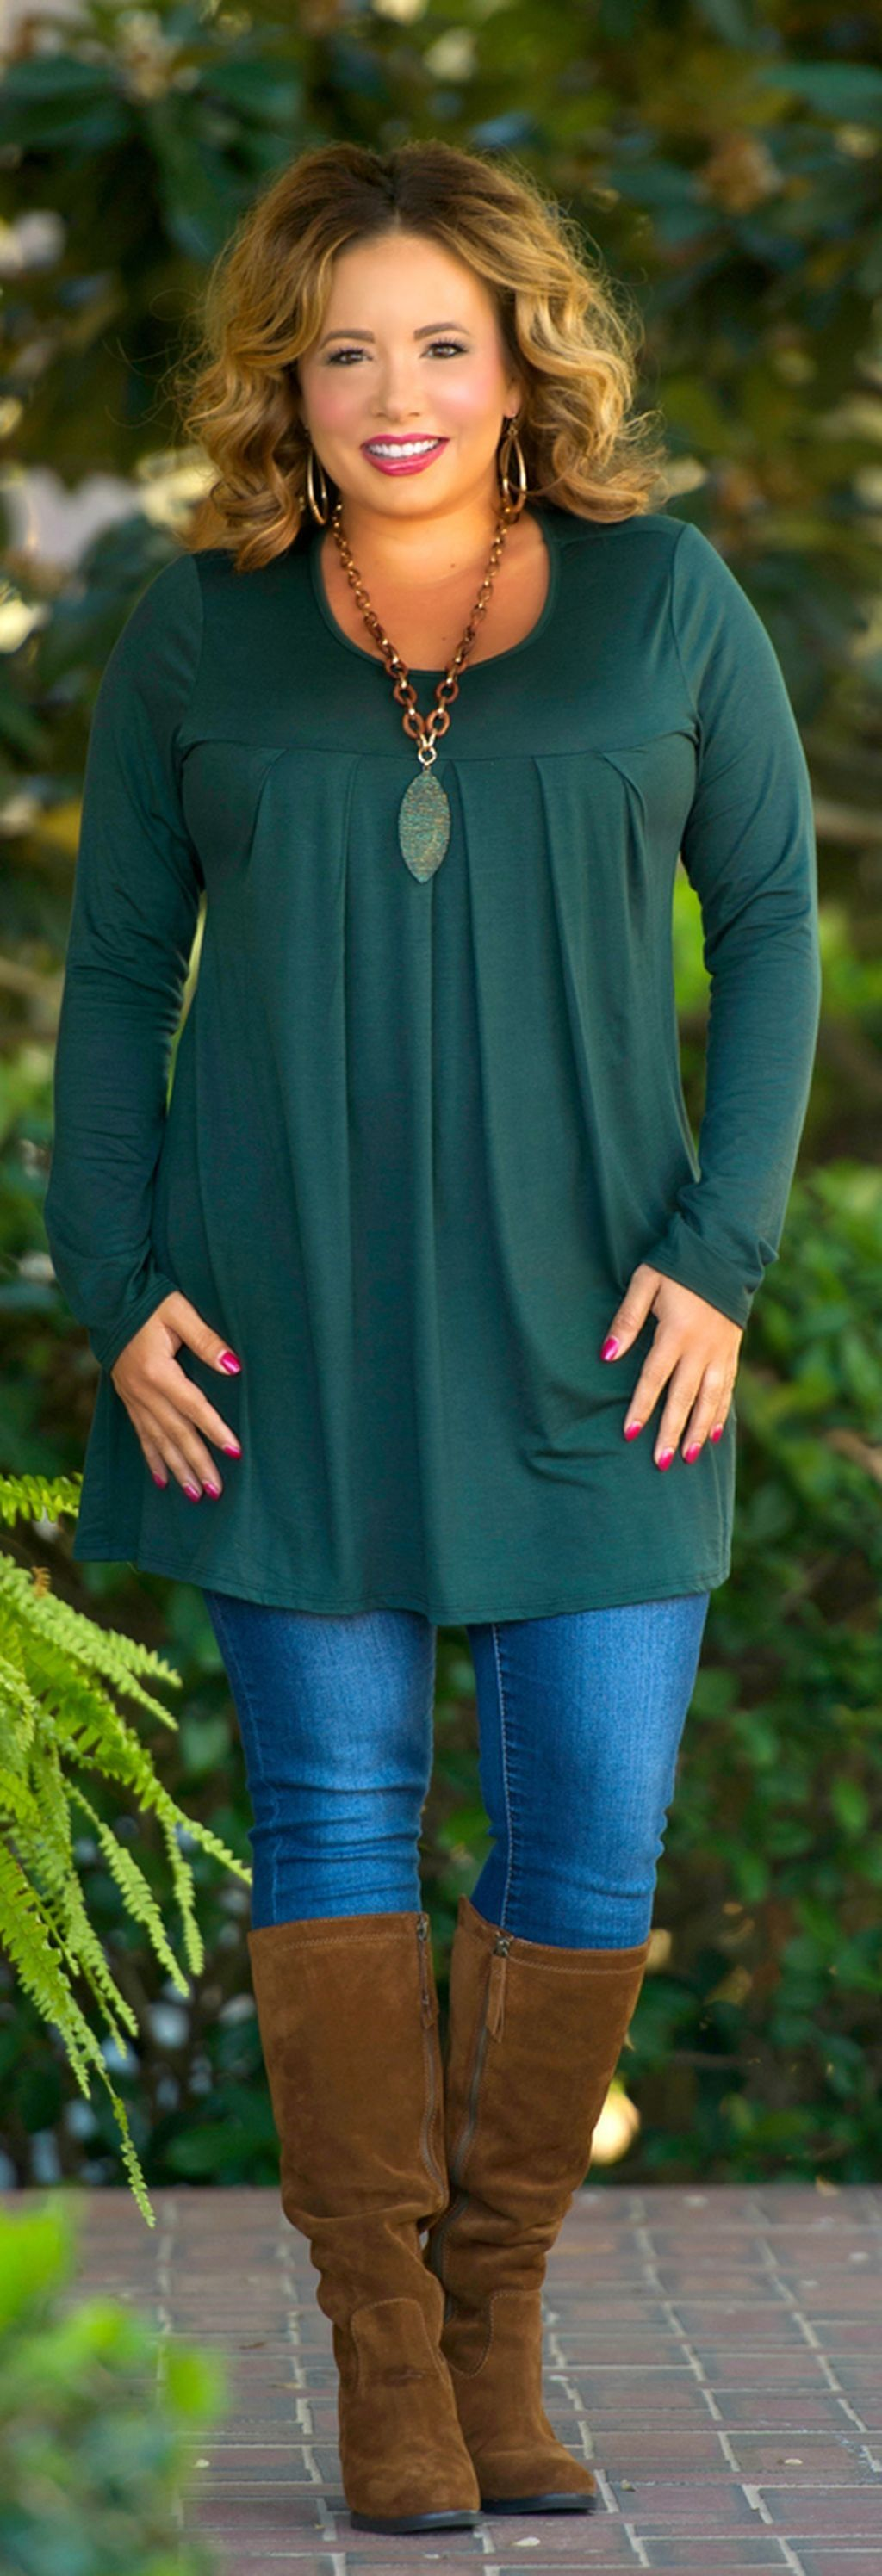 25 casual plus size winter outfits you have to try 6 - 25-casual-plus-size-winter-outfits-you-have-to-try-6